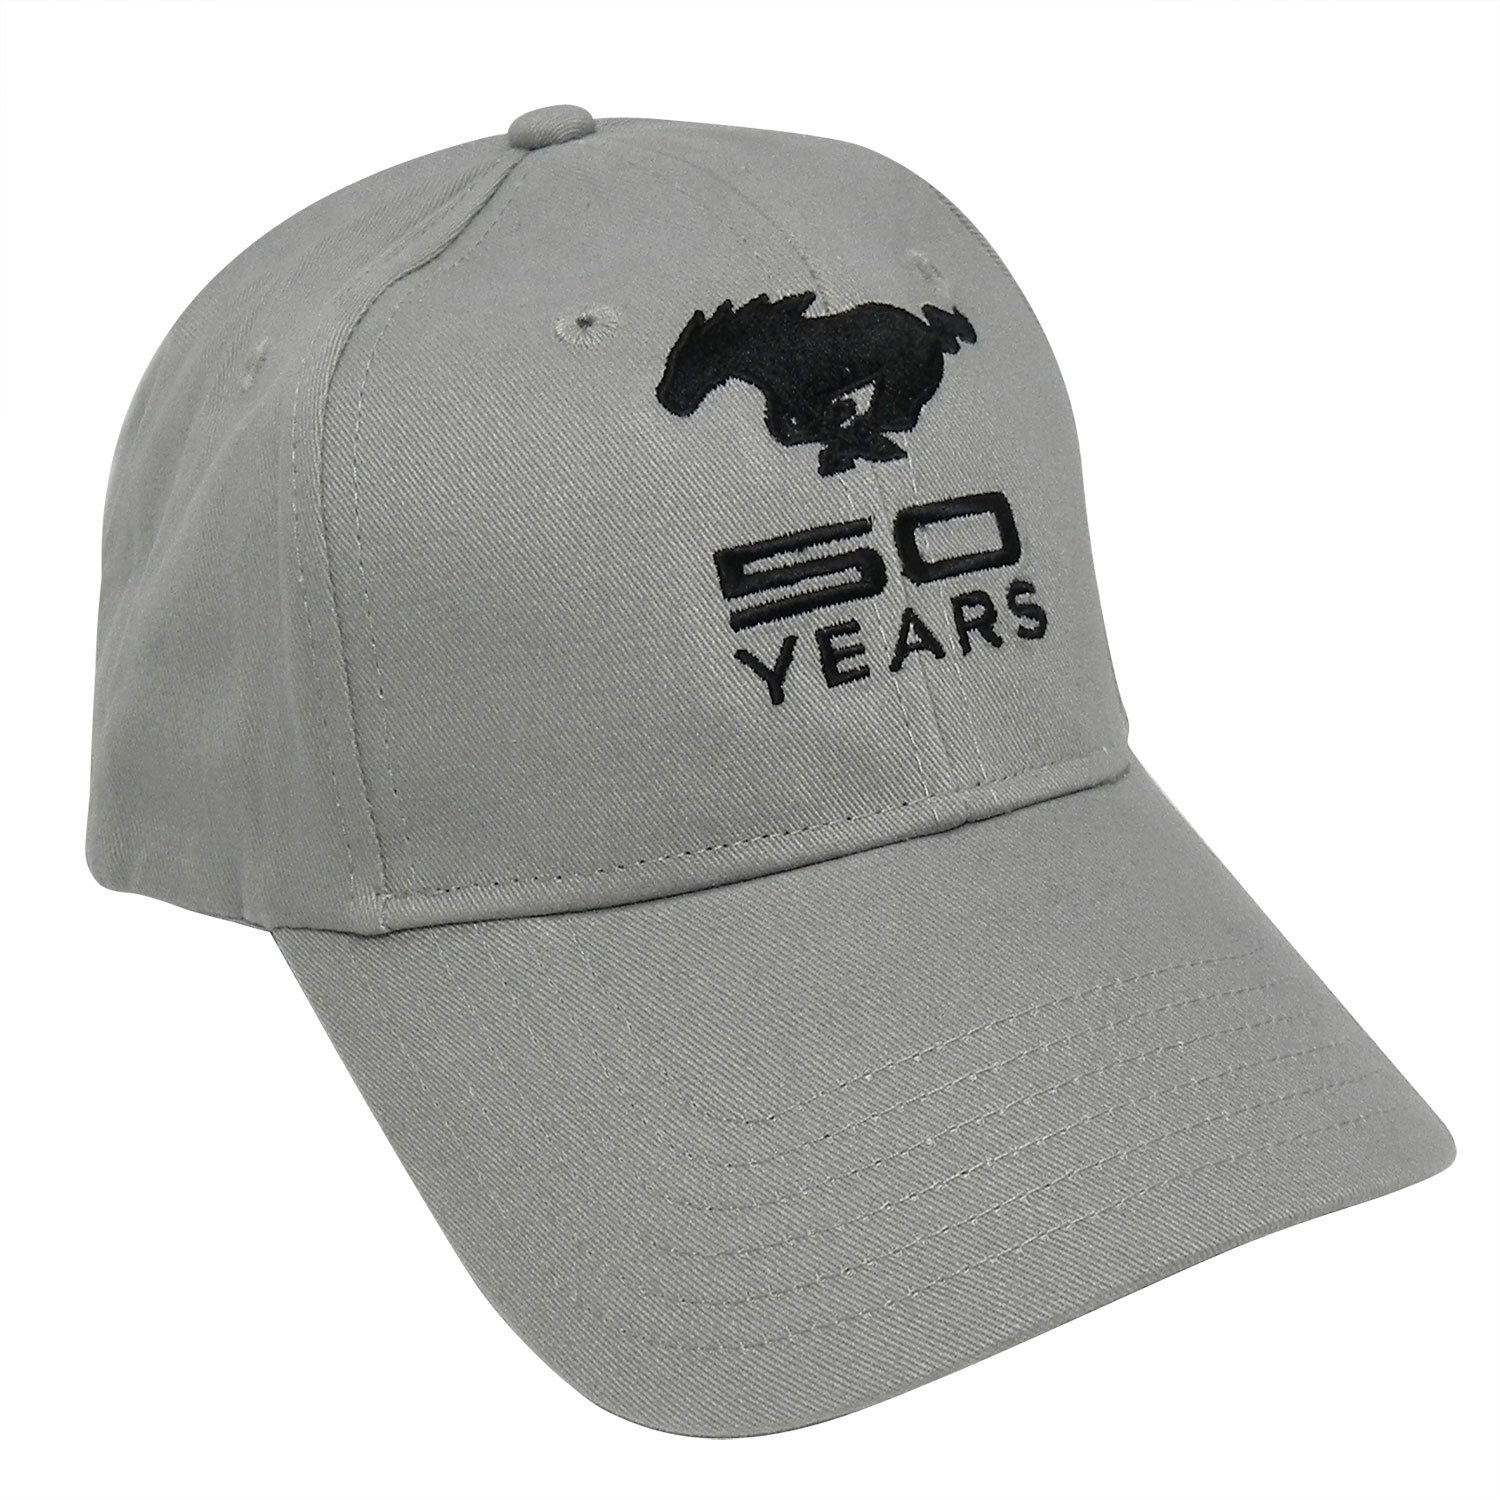 Ford Mustang 50th Years Anniversary Gray Baseball Hat Hot Rod Plus 5559018648